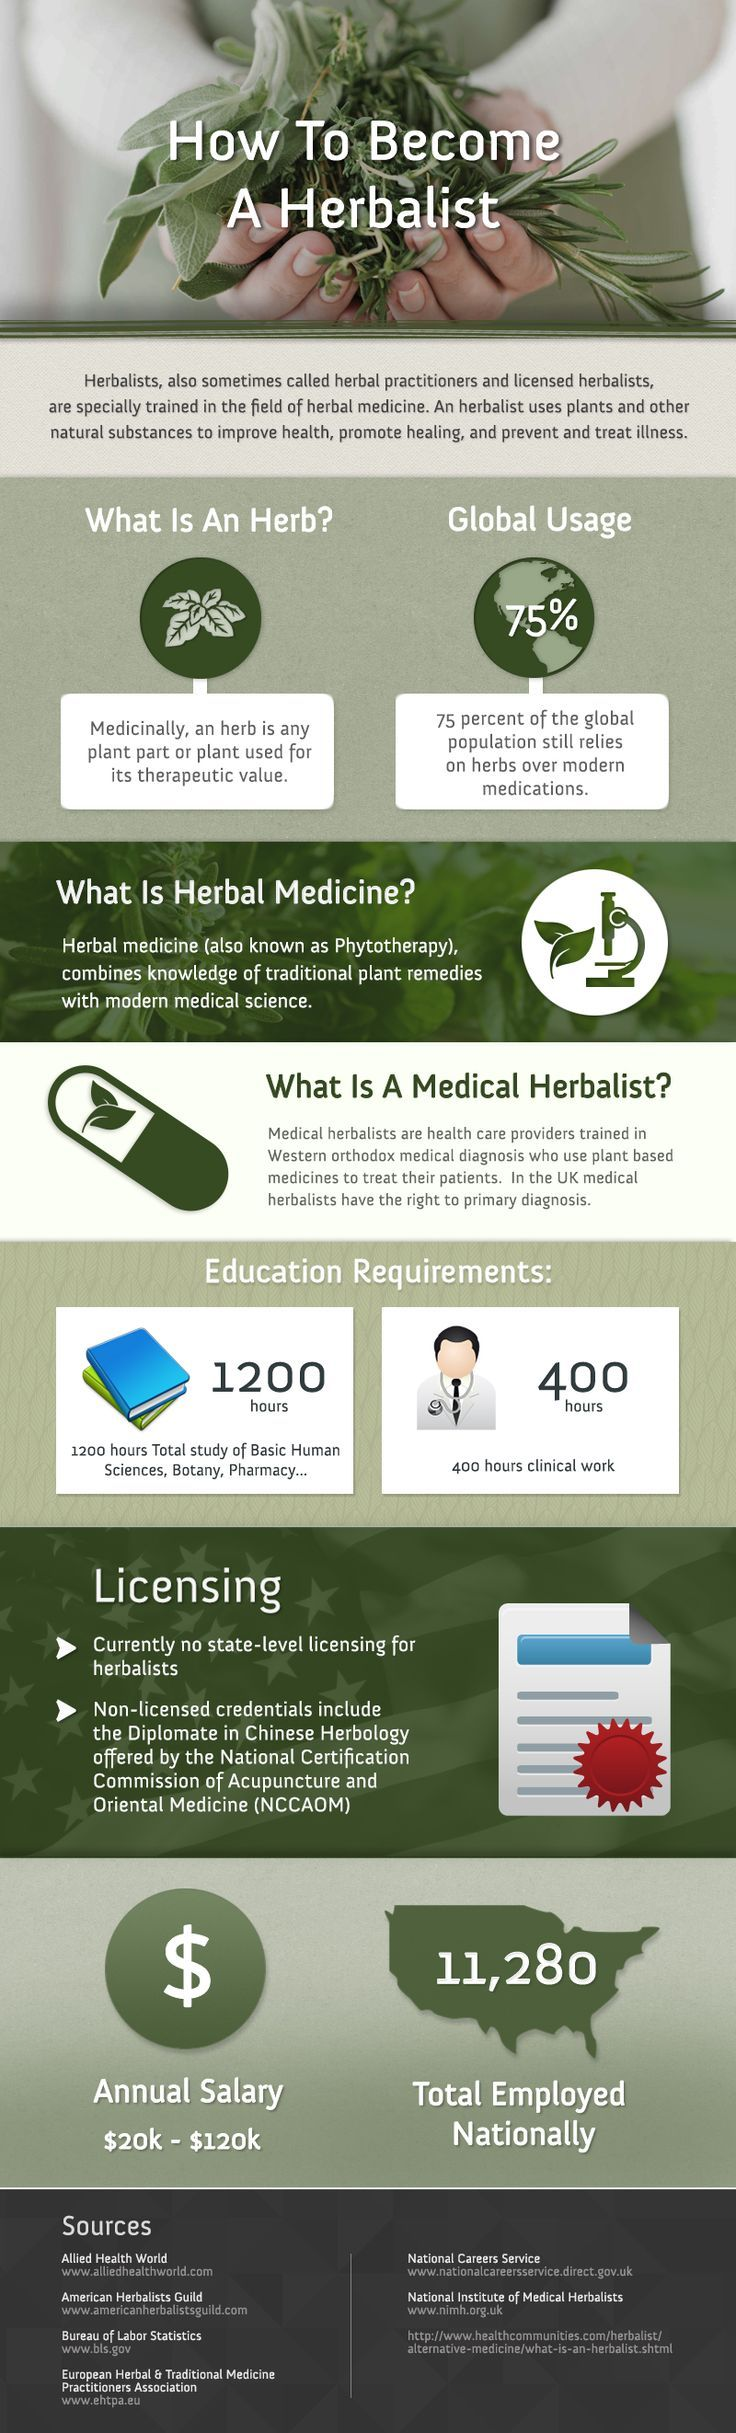 How To Become A Herbalist #infographic | Herbal Medicine